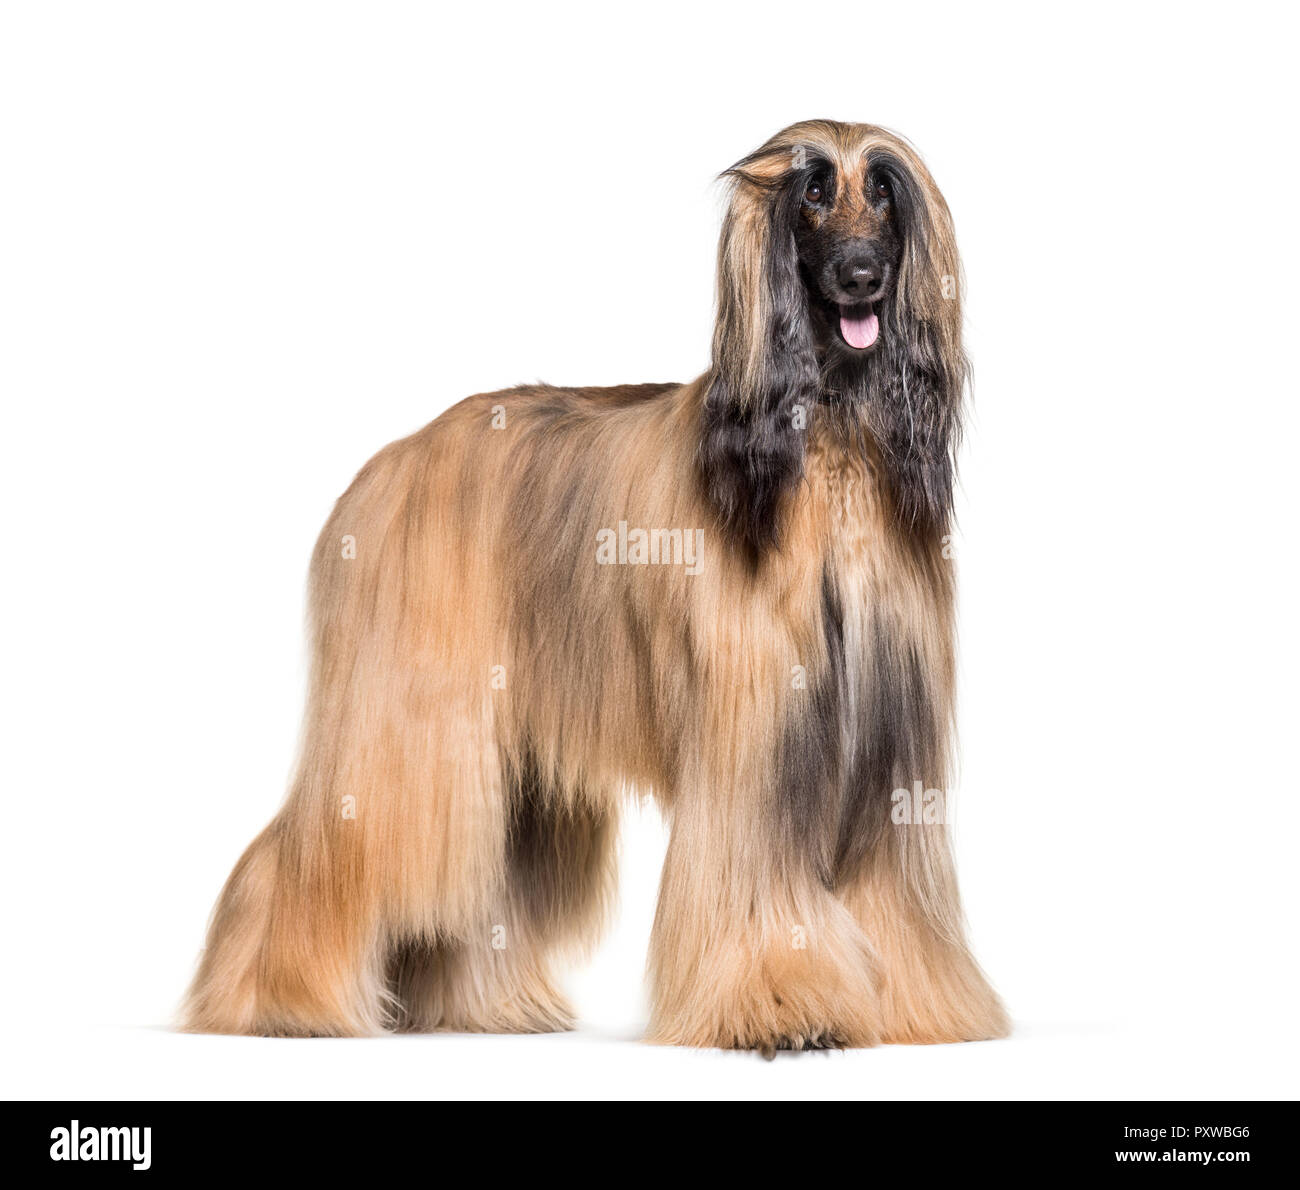 Afghan hound standing against white background - Stock Image